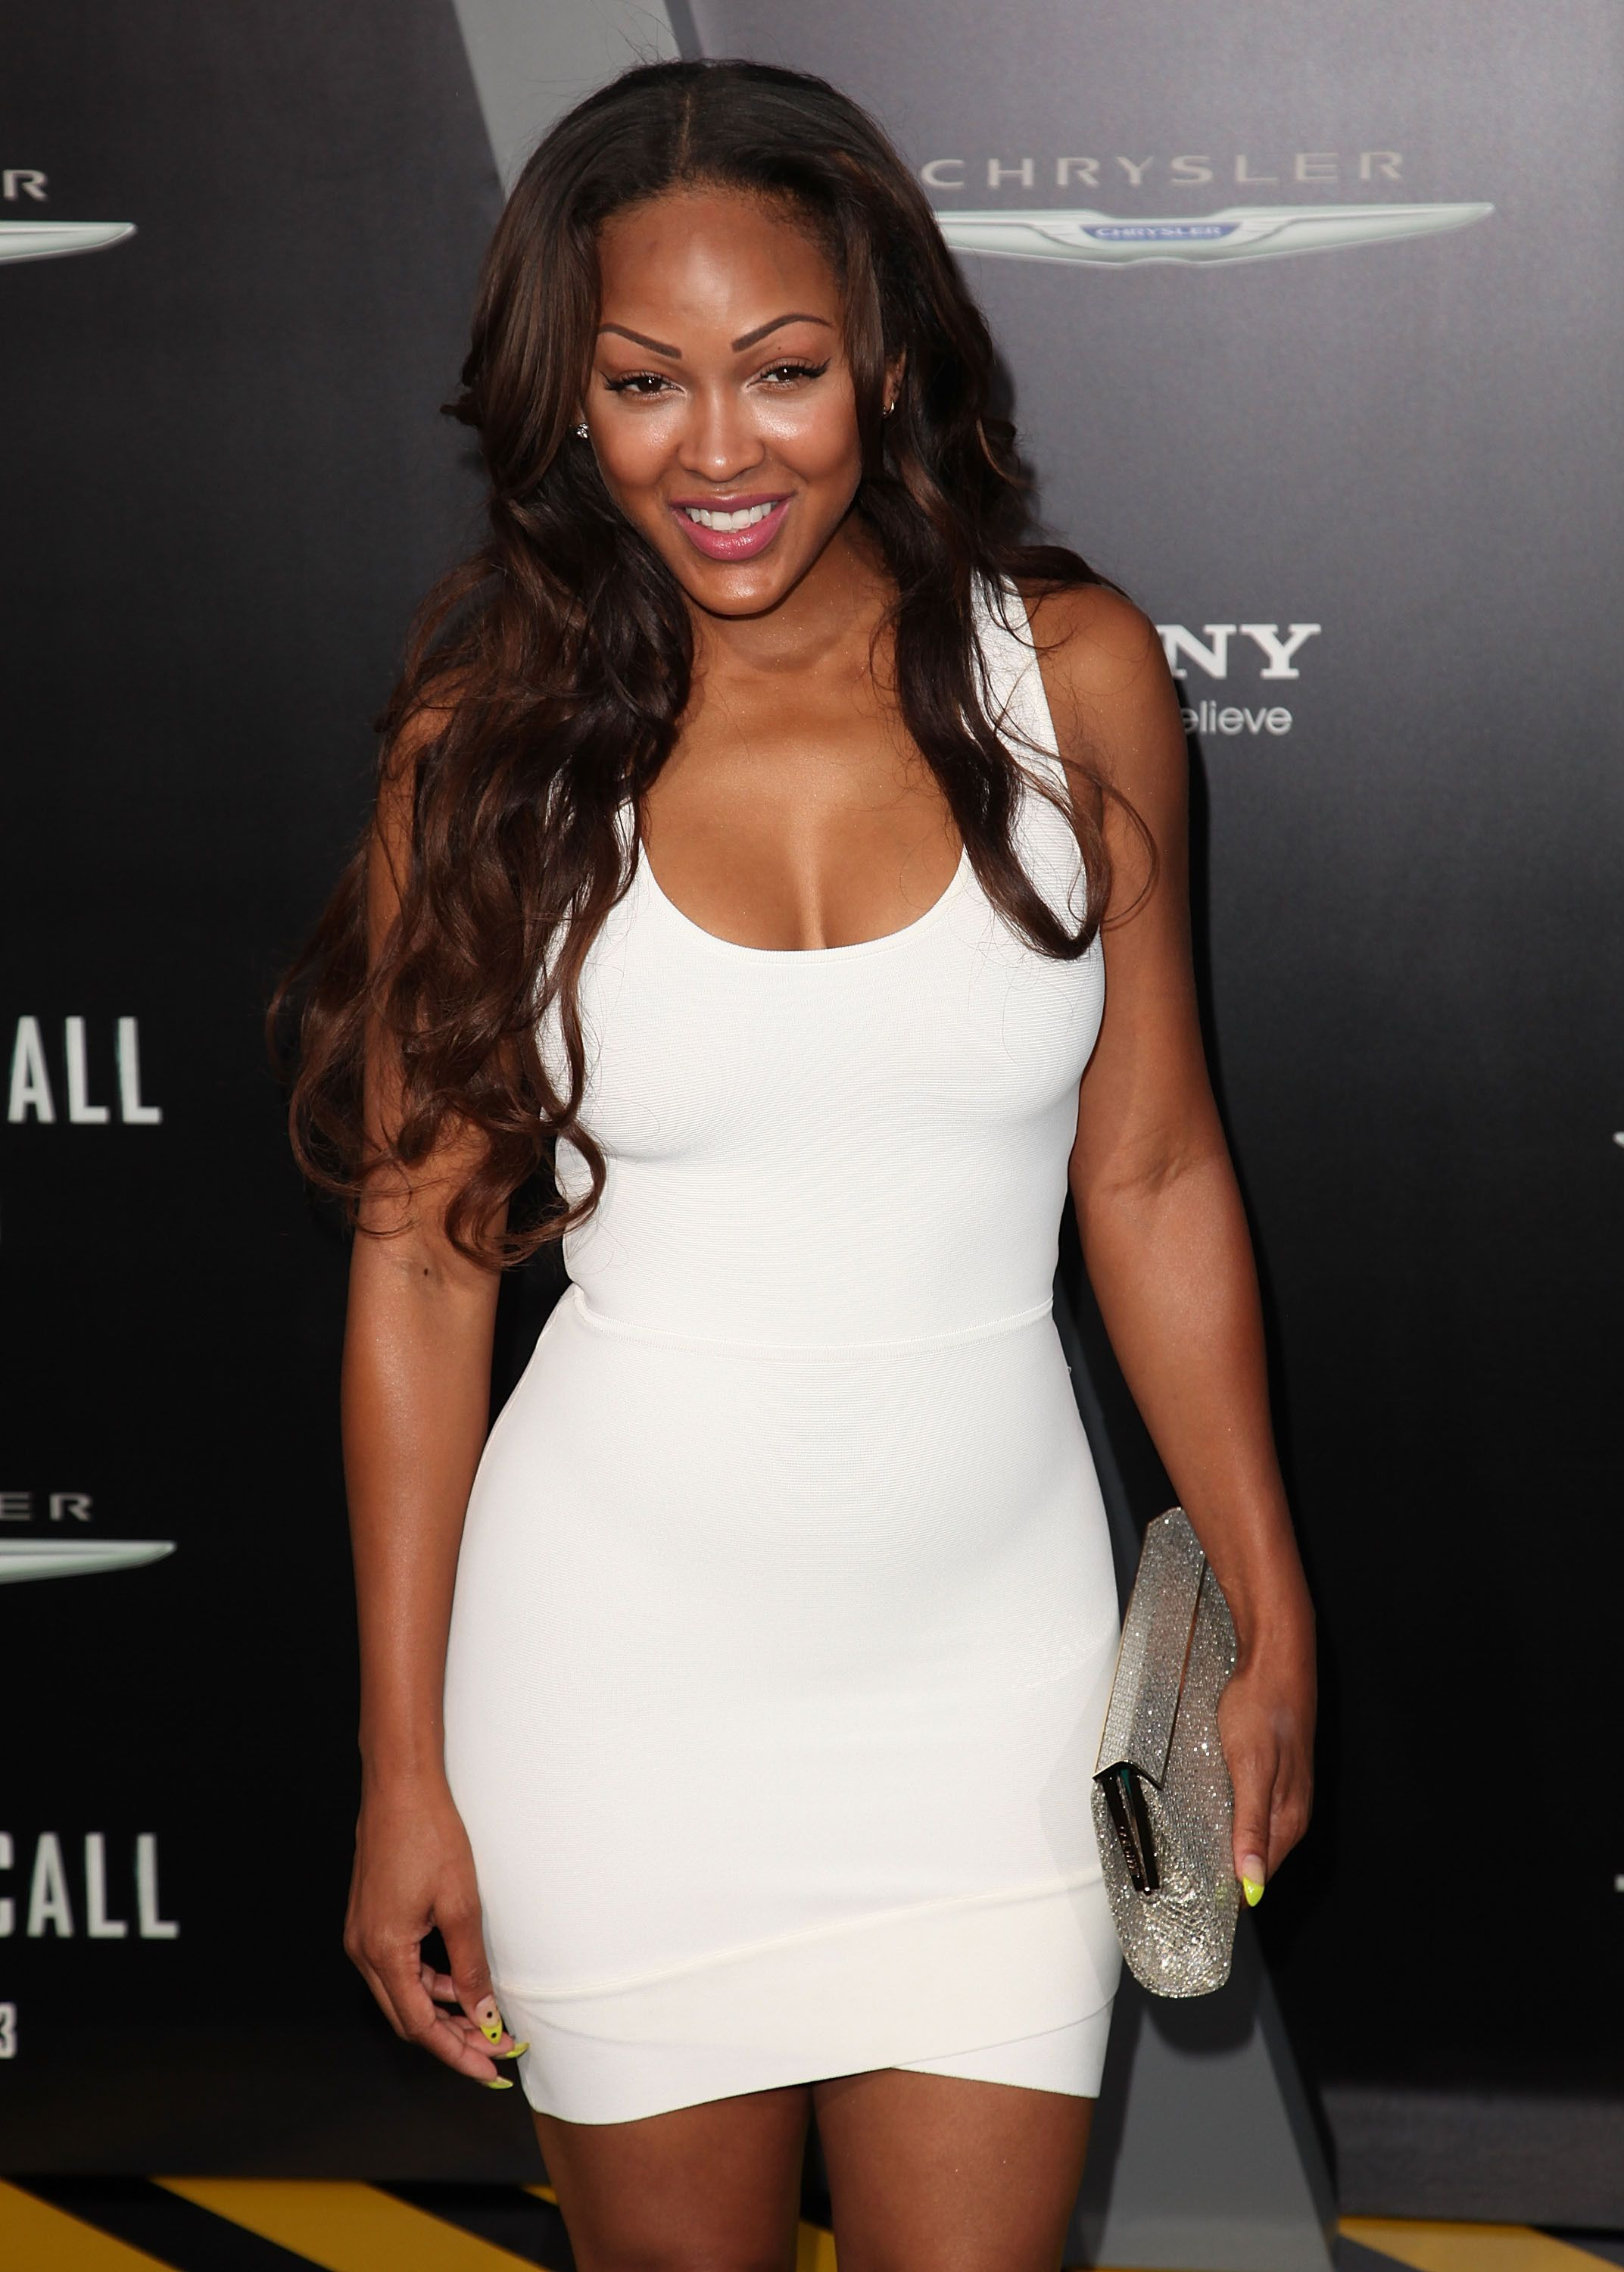 Snapchat Meagan Good nudes (14 photos), Topless, Cleavage, Selfie, lingerie 2006